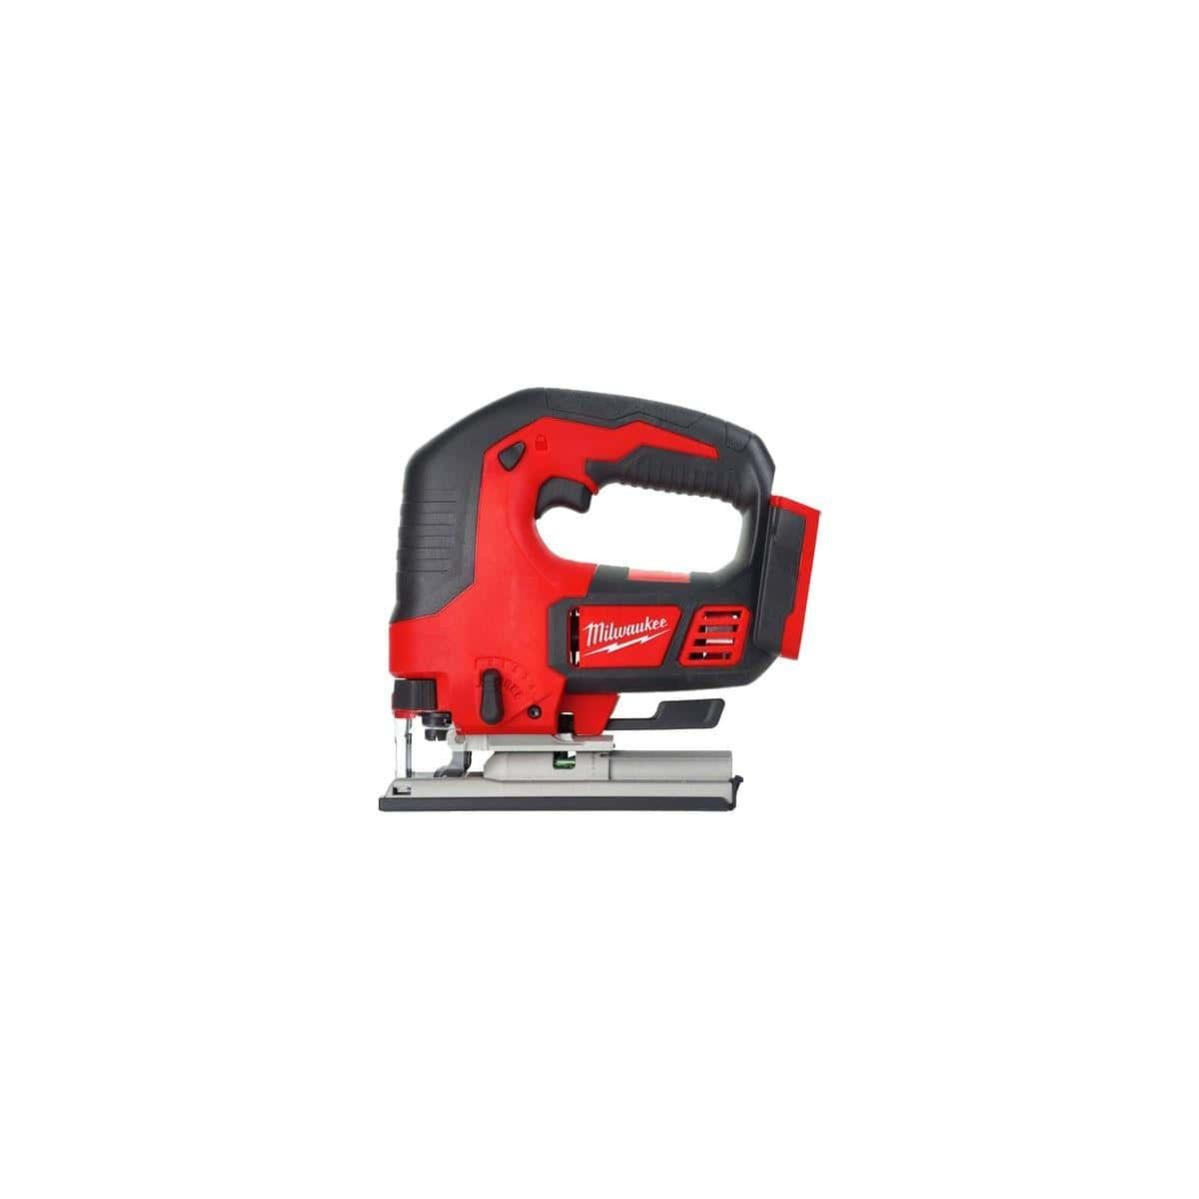 Milwaukee m18 csx-0x Batterie-Scie HD Box sans batterie//chargeur